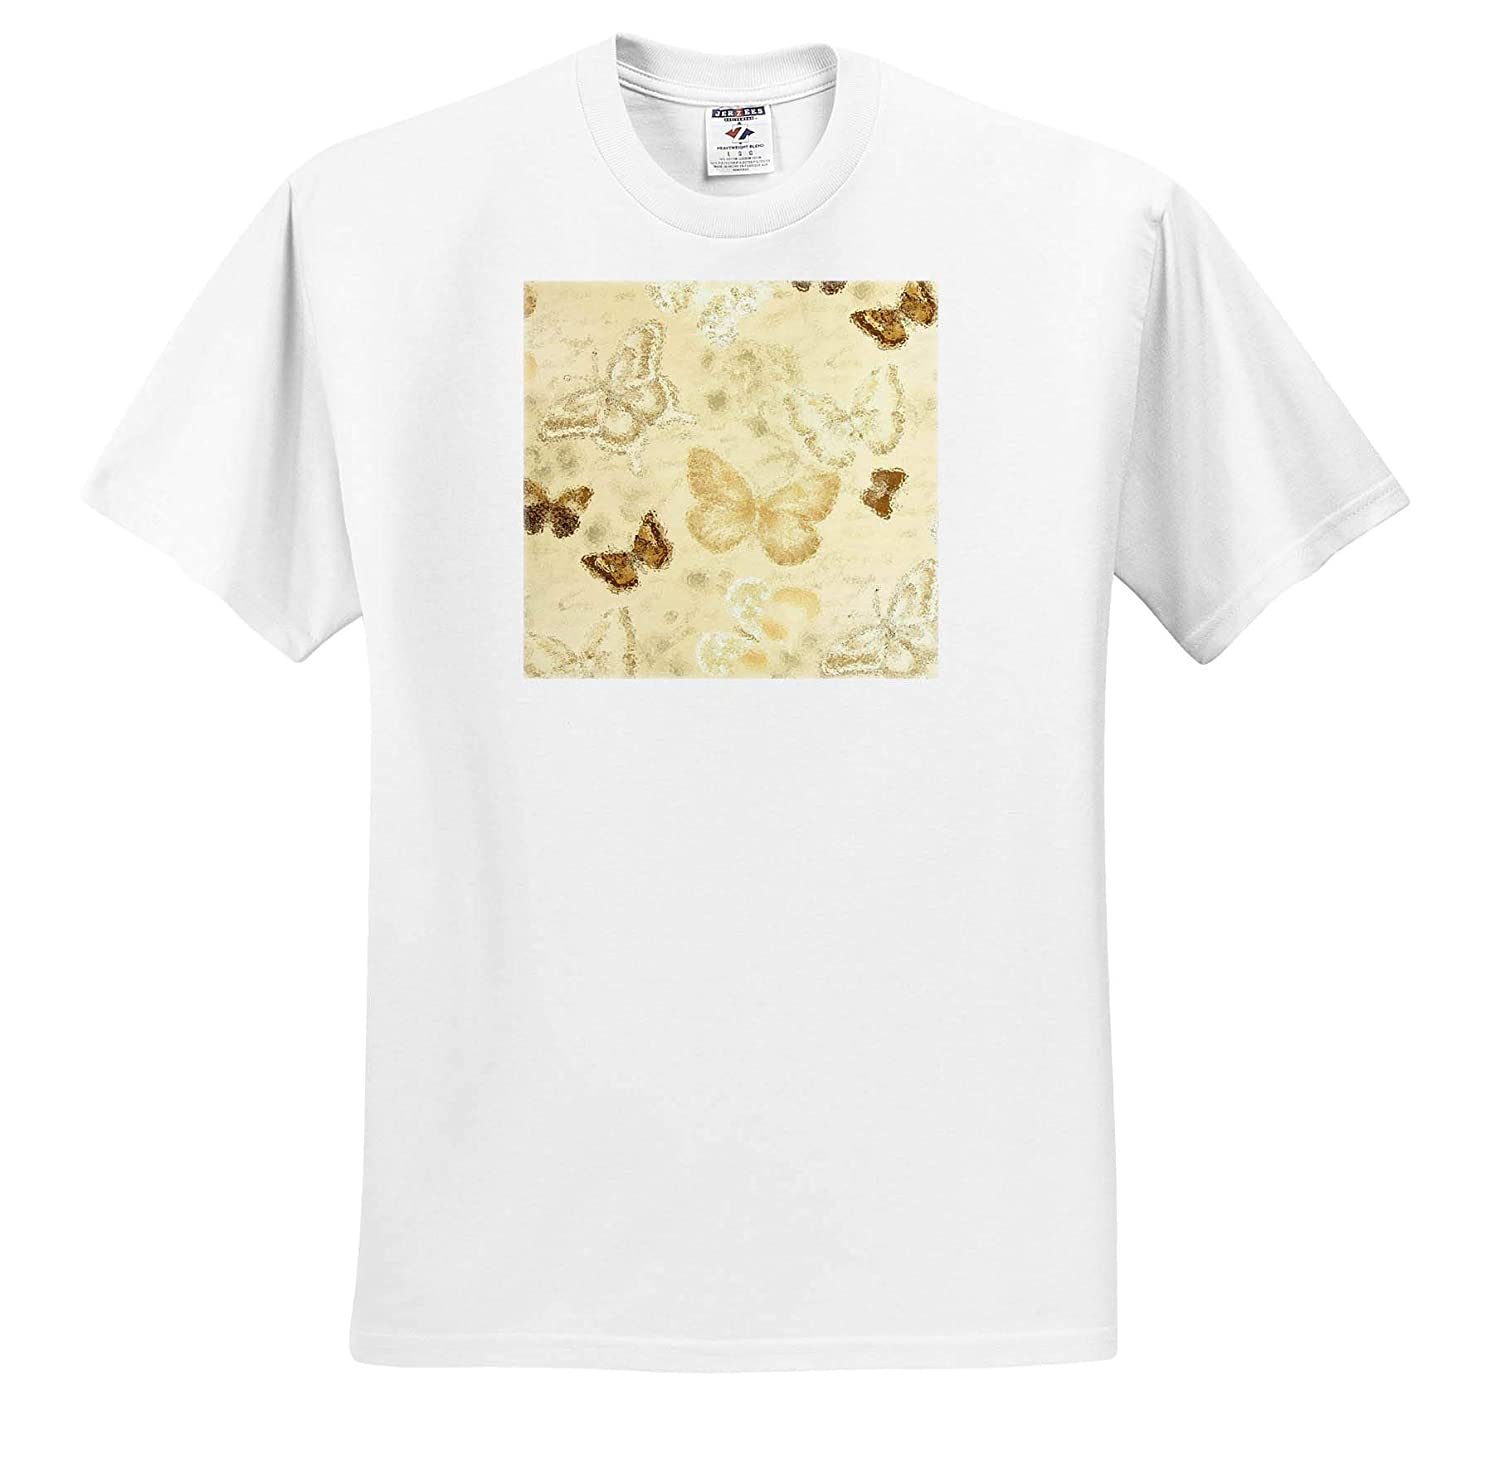 Photo Glass Art Adult T-Shirt XL ts/_318351 3dRose Lens Art by Florene Image of Sepia Butterflies Under Glass